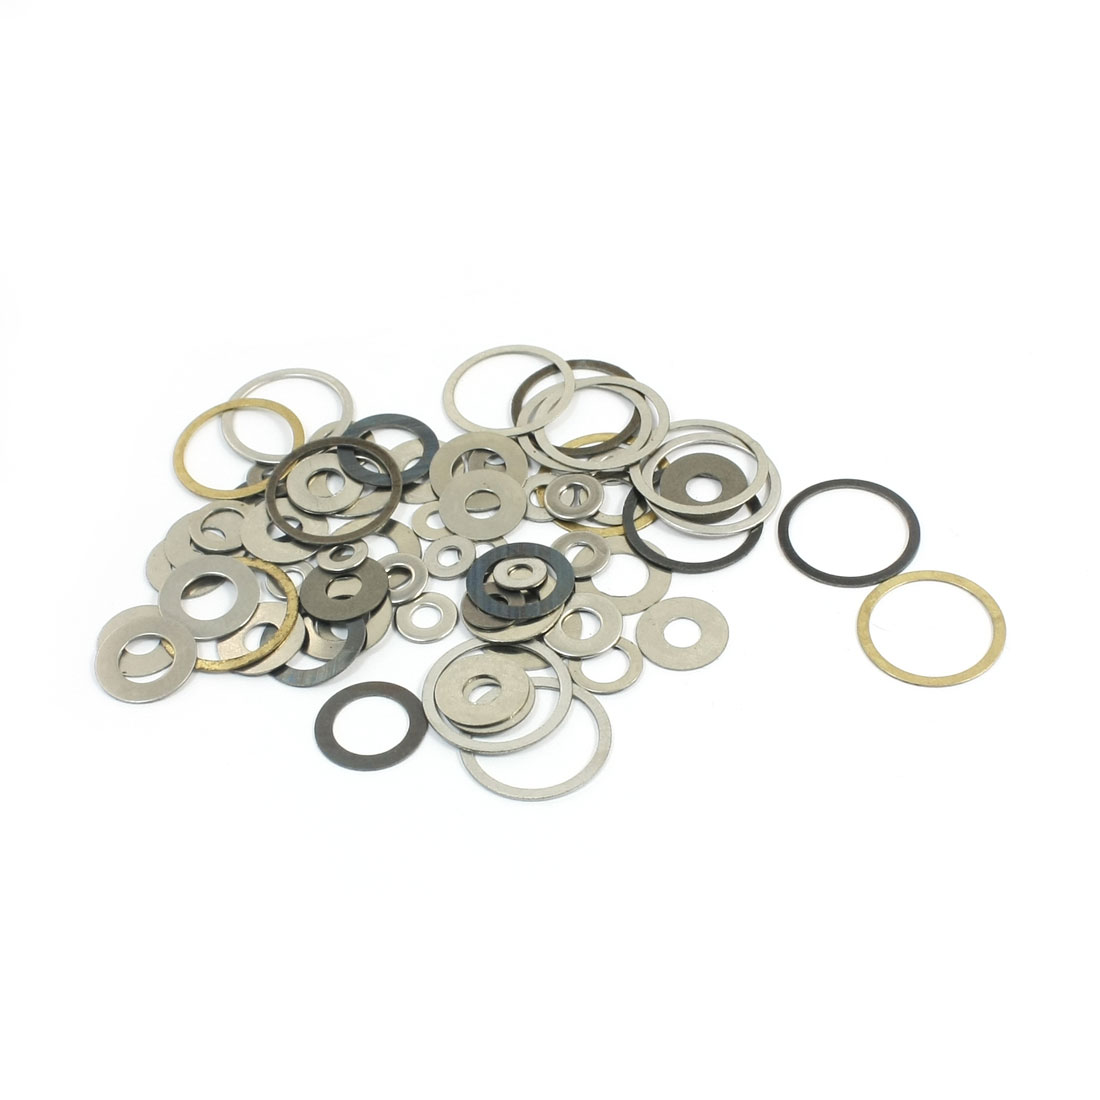 81069 Washers Complete Parts for 1:8 94081 94083 RC Model Cars Buggy